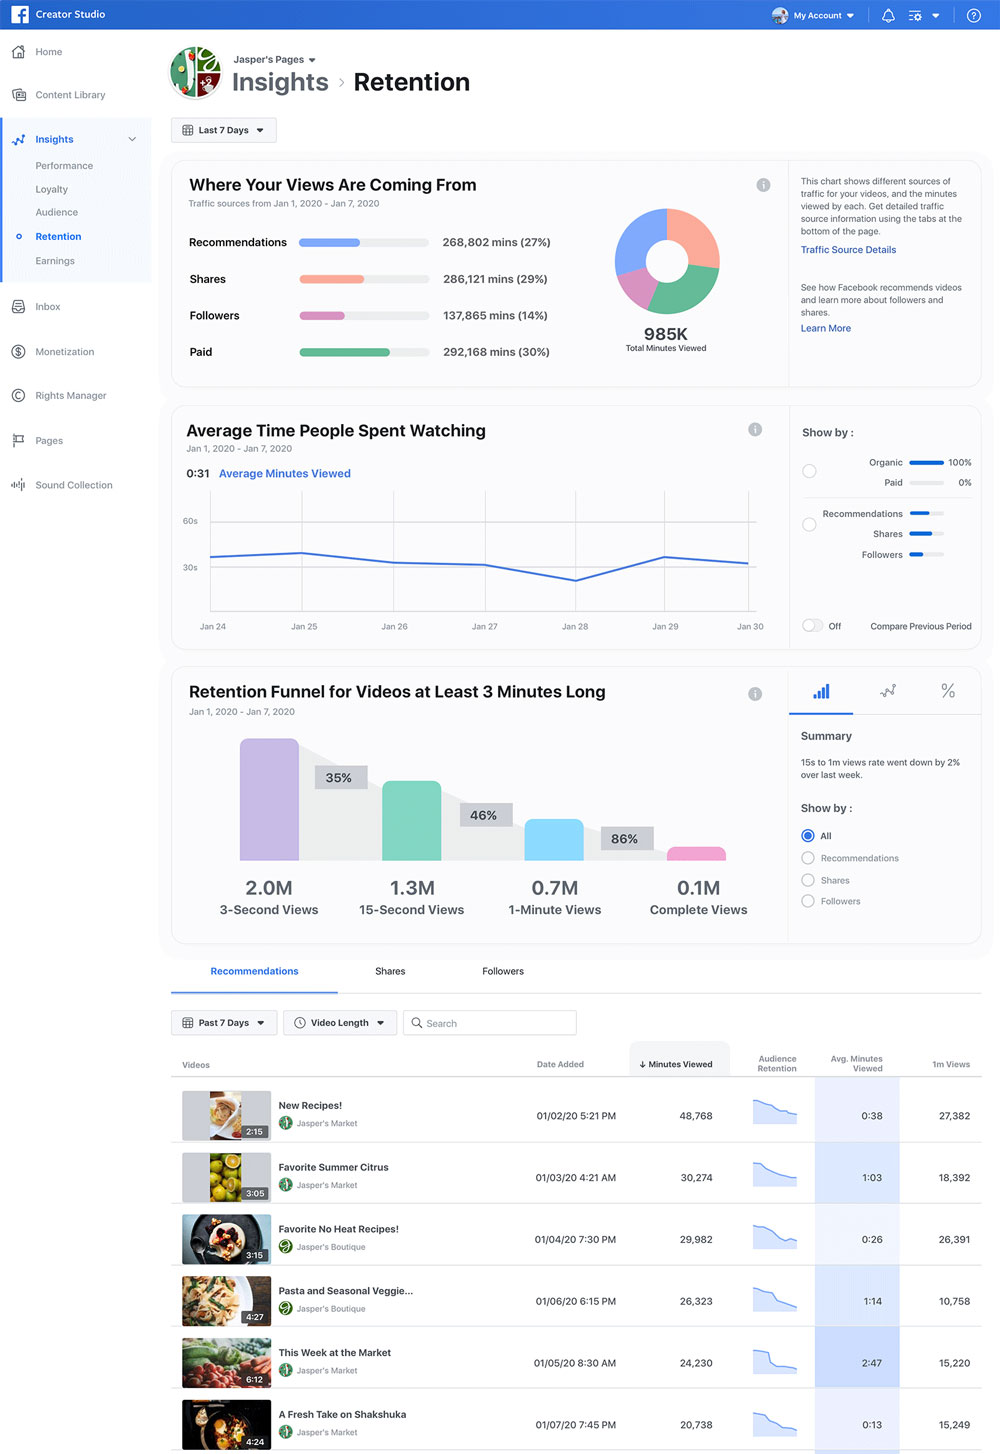 facebook traffic source insights